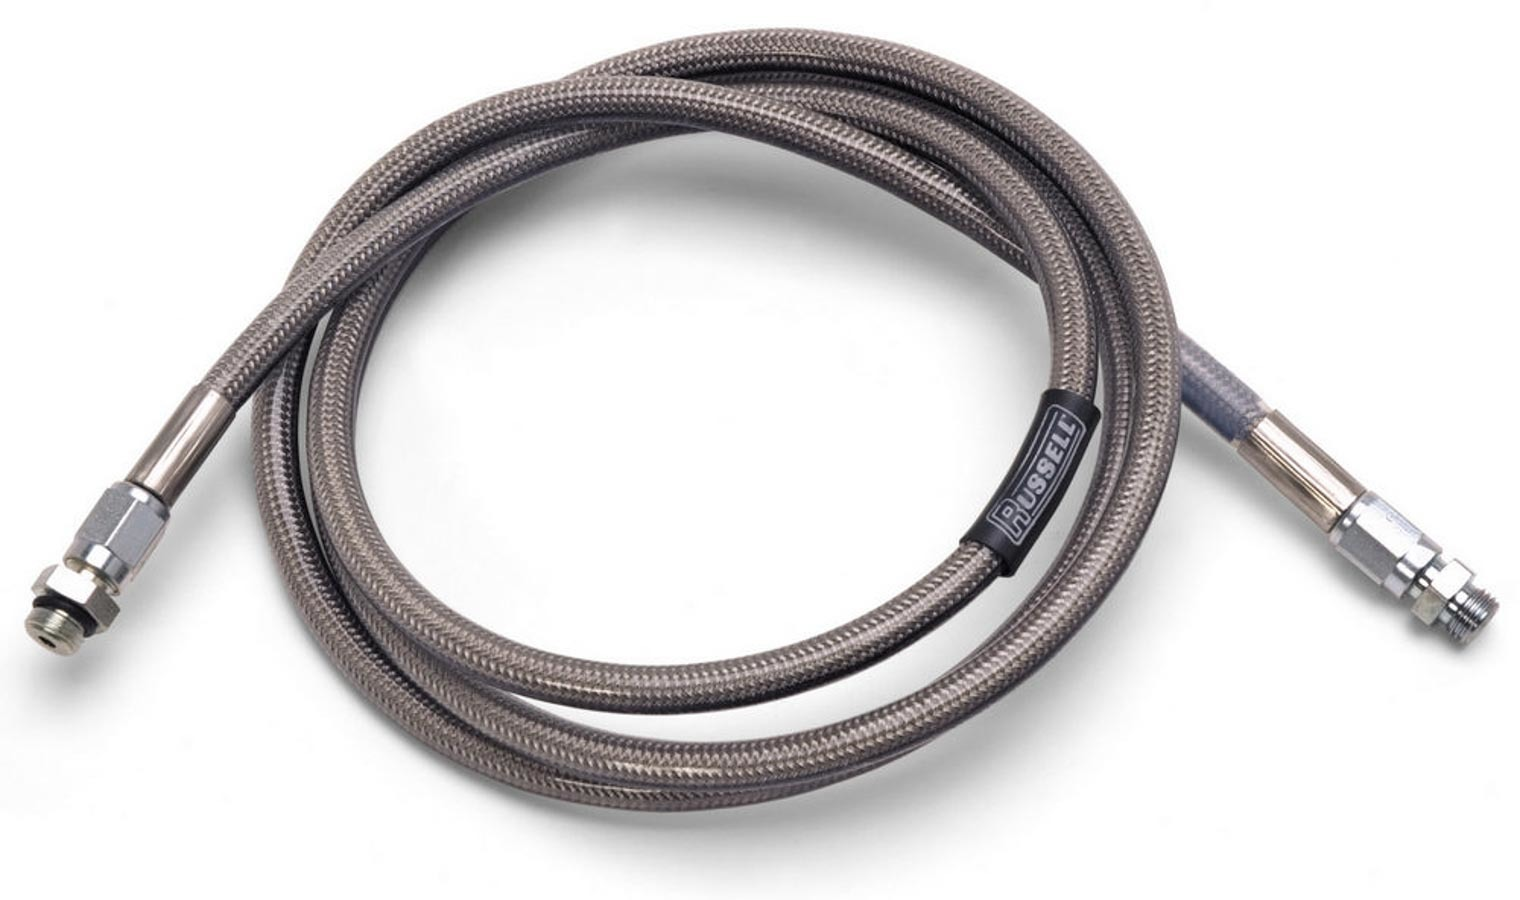 Russell SS Braided Hose Kit 5' For ARB Air Locker